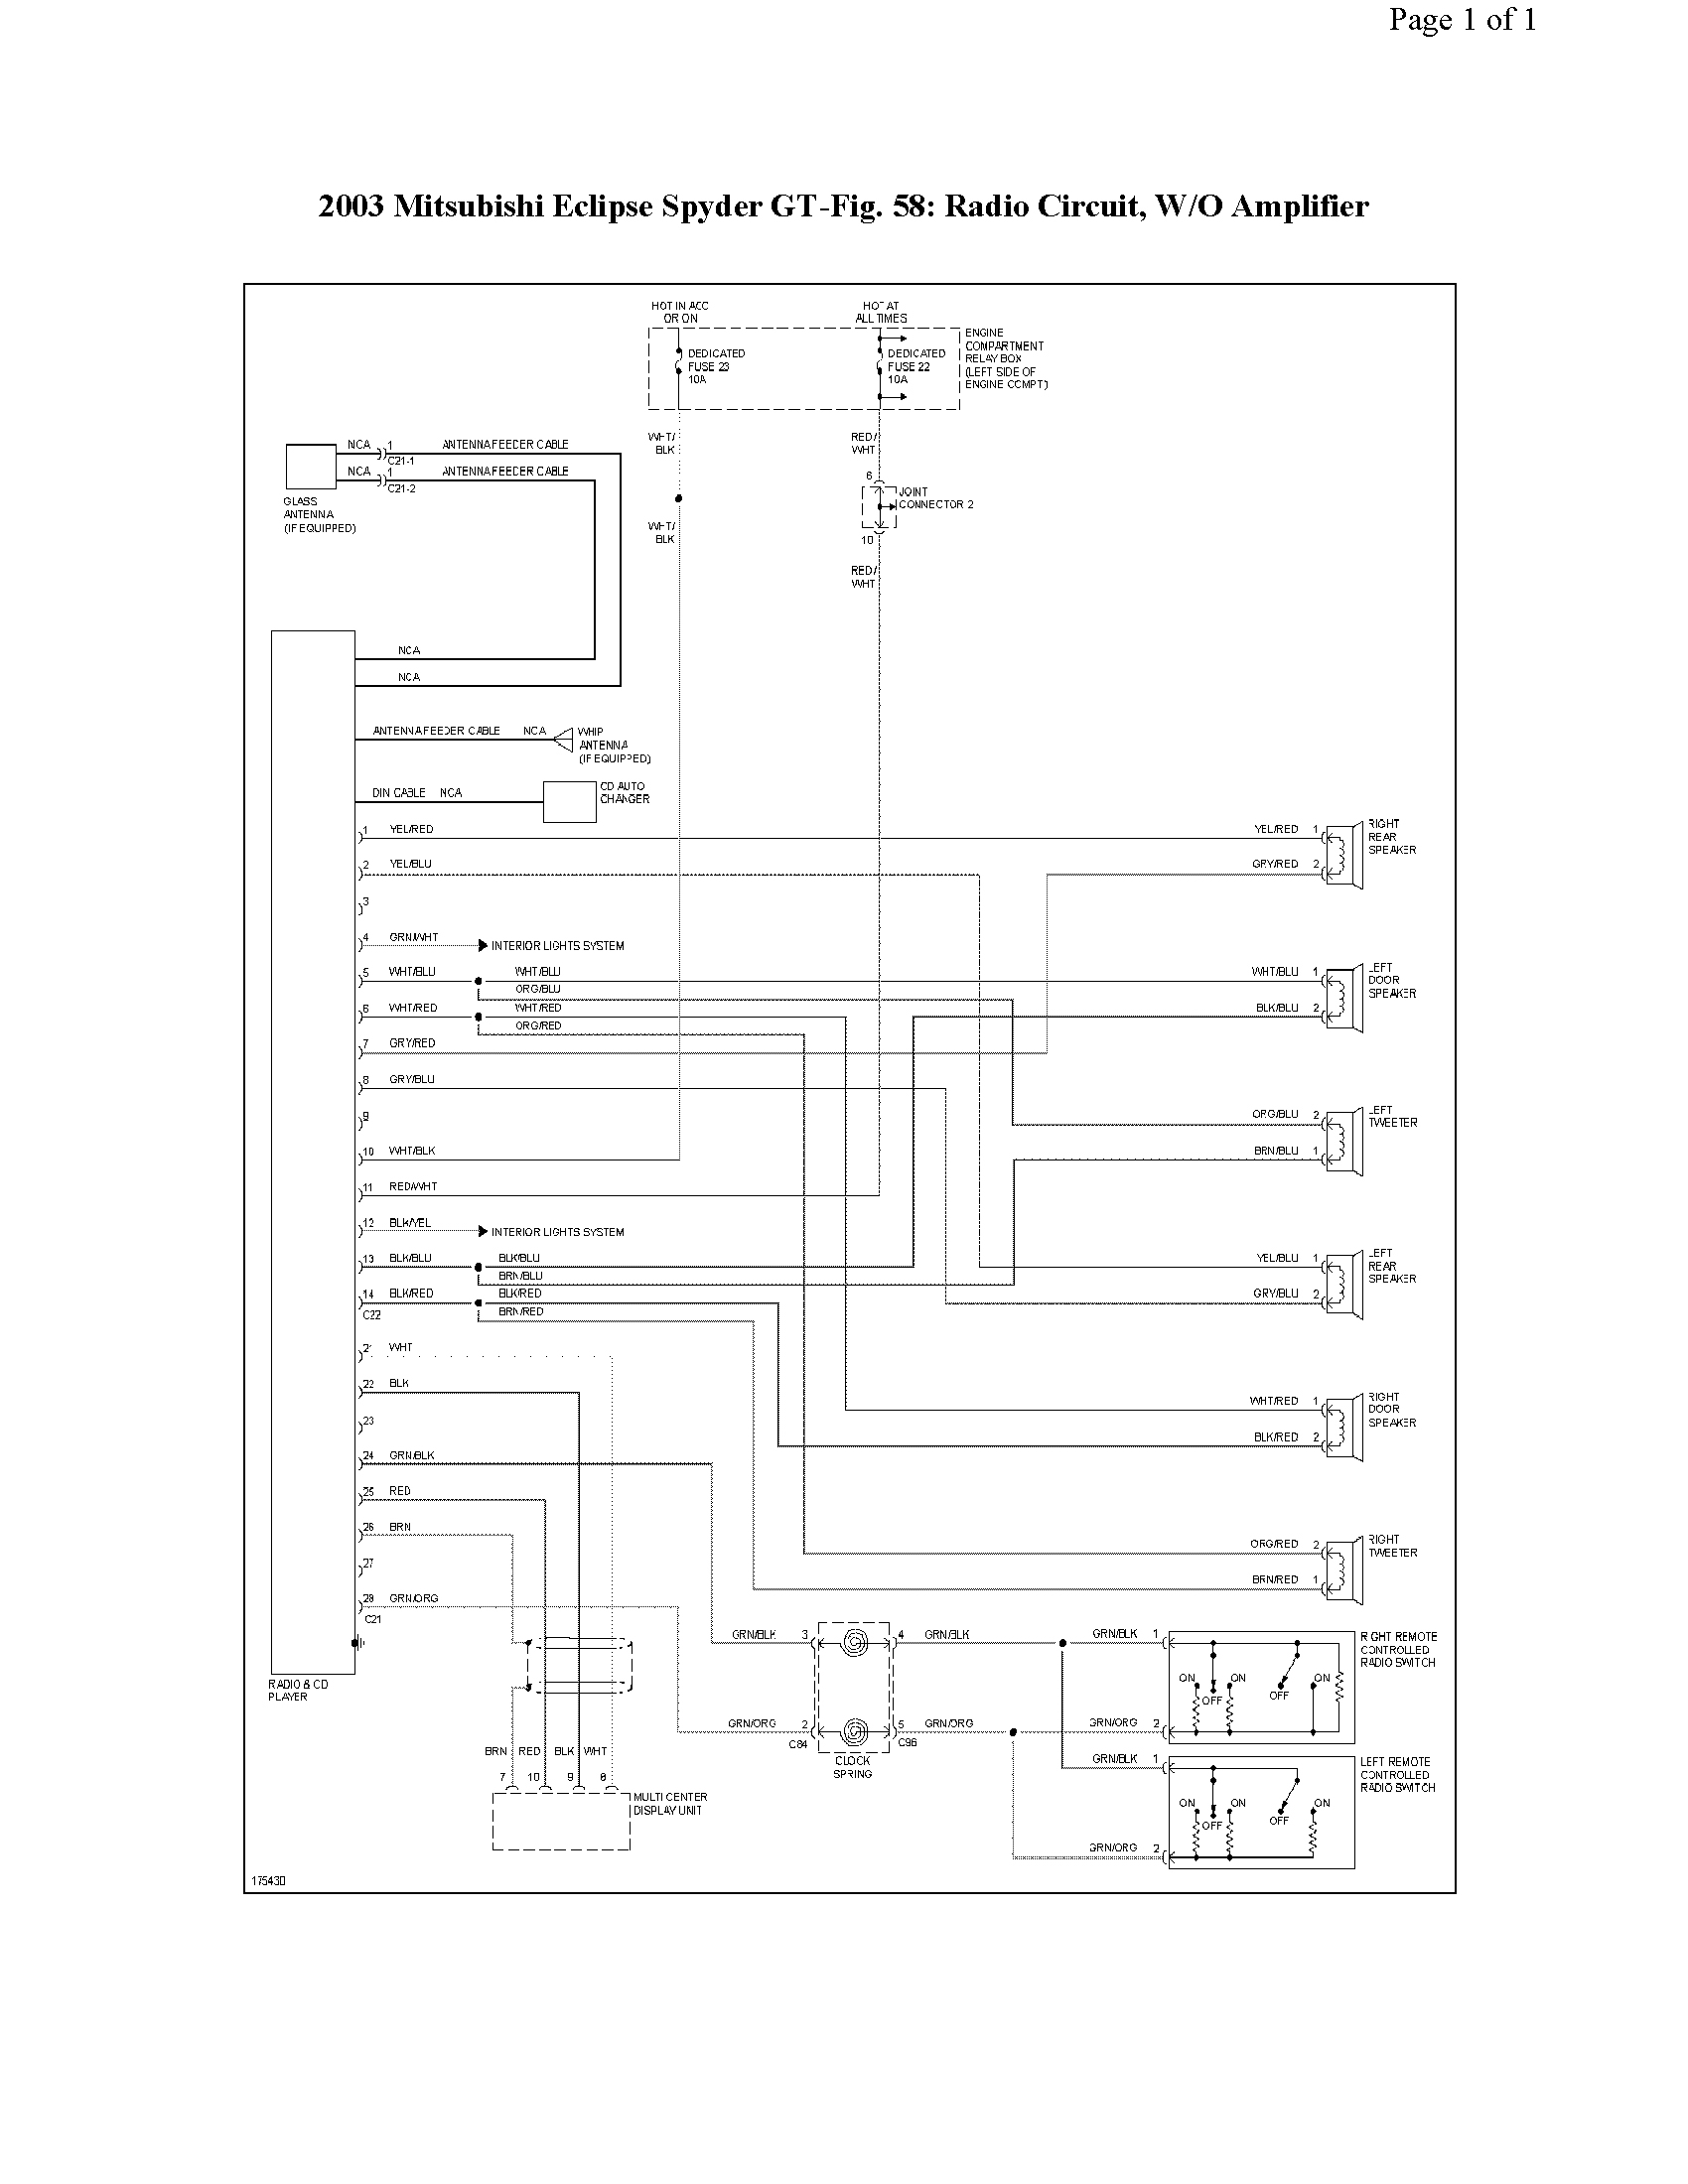 Eclipse Avn726e Wiring Diagram | Wiring Diagram on eclipse car stereo manuals, eclipse avn2210p wiring-diagram, eclipse avn5500 installation manual, eclipse avn6620 owner's manual,